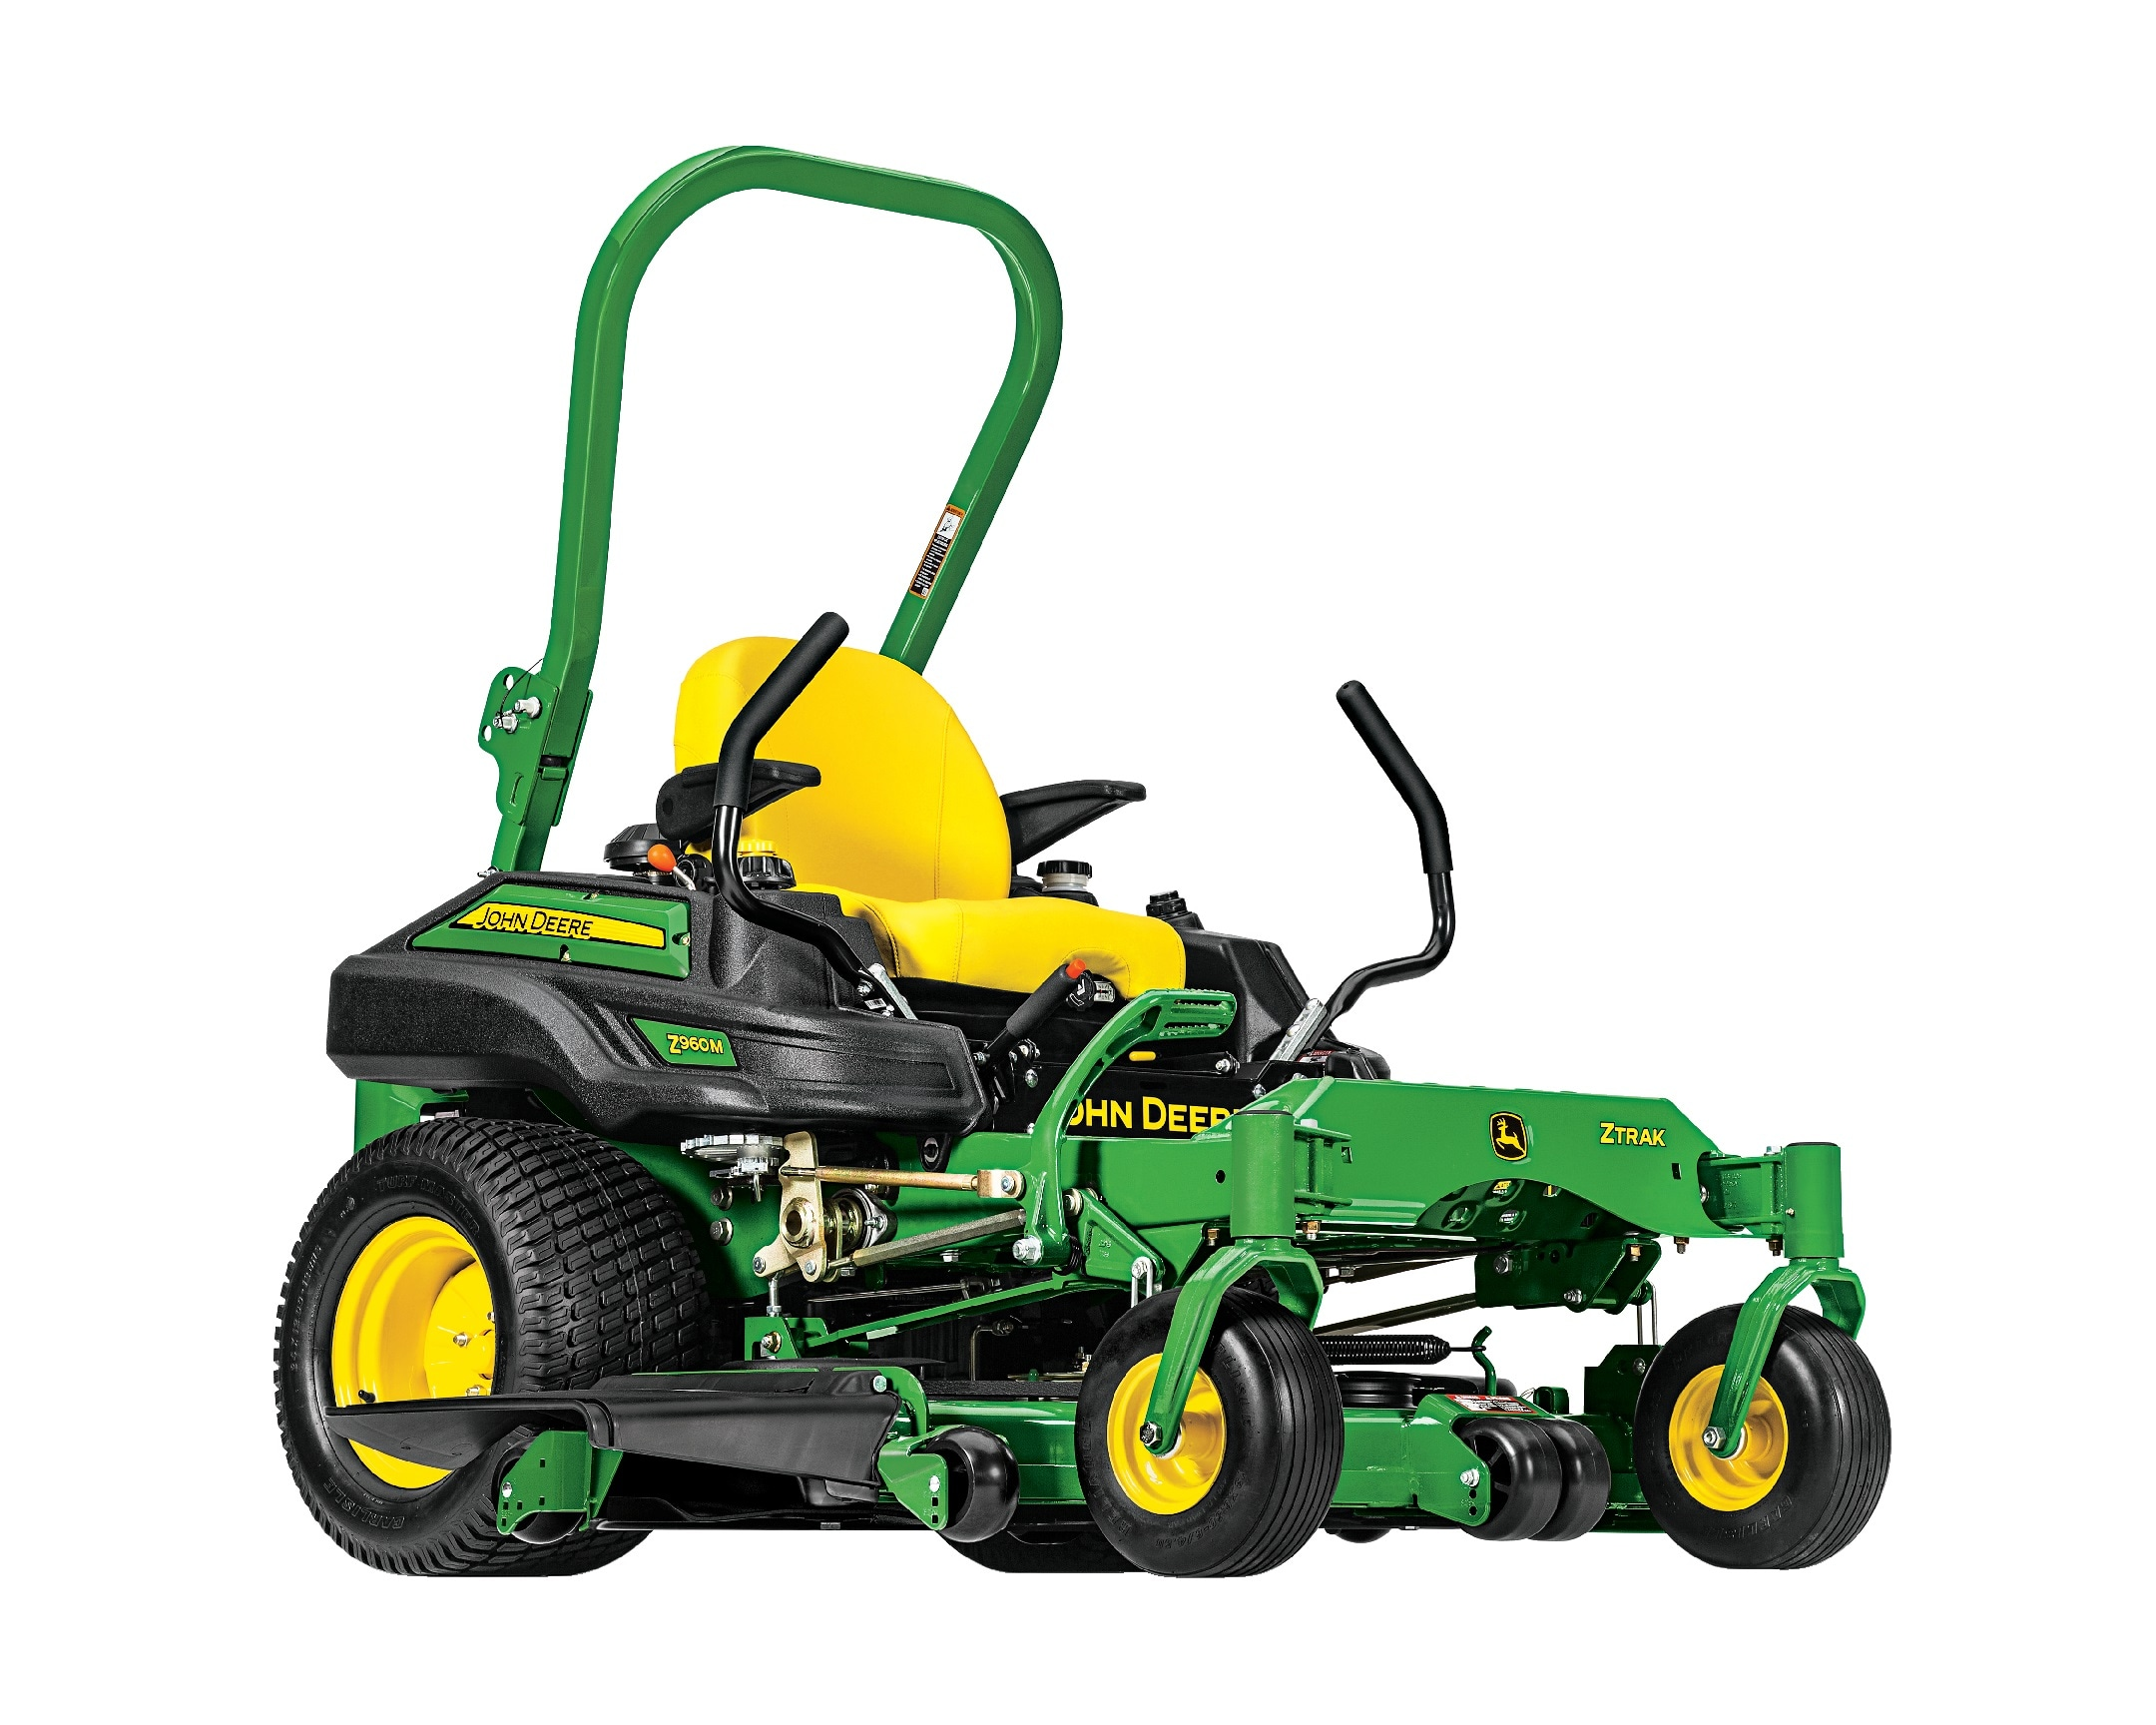 Studio image of a Z960M commercial mower